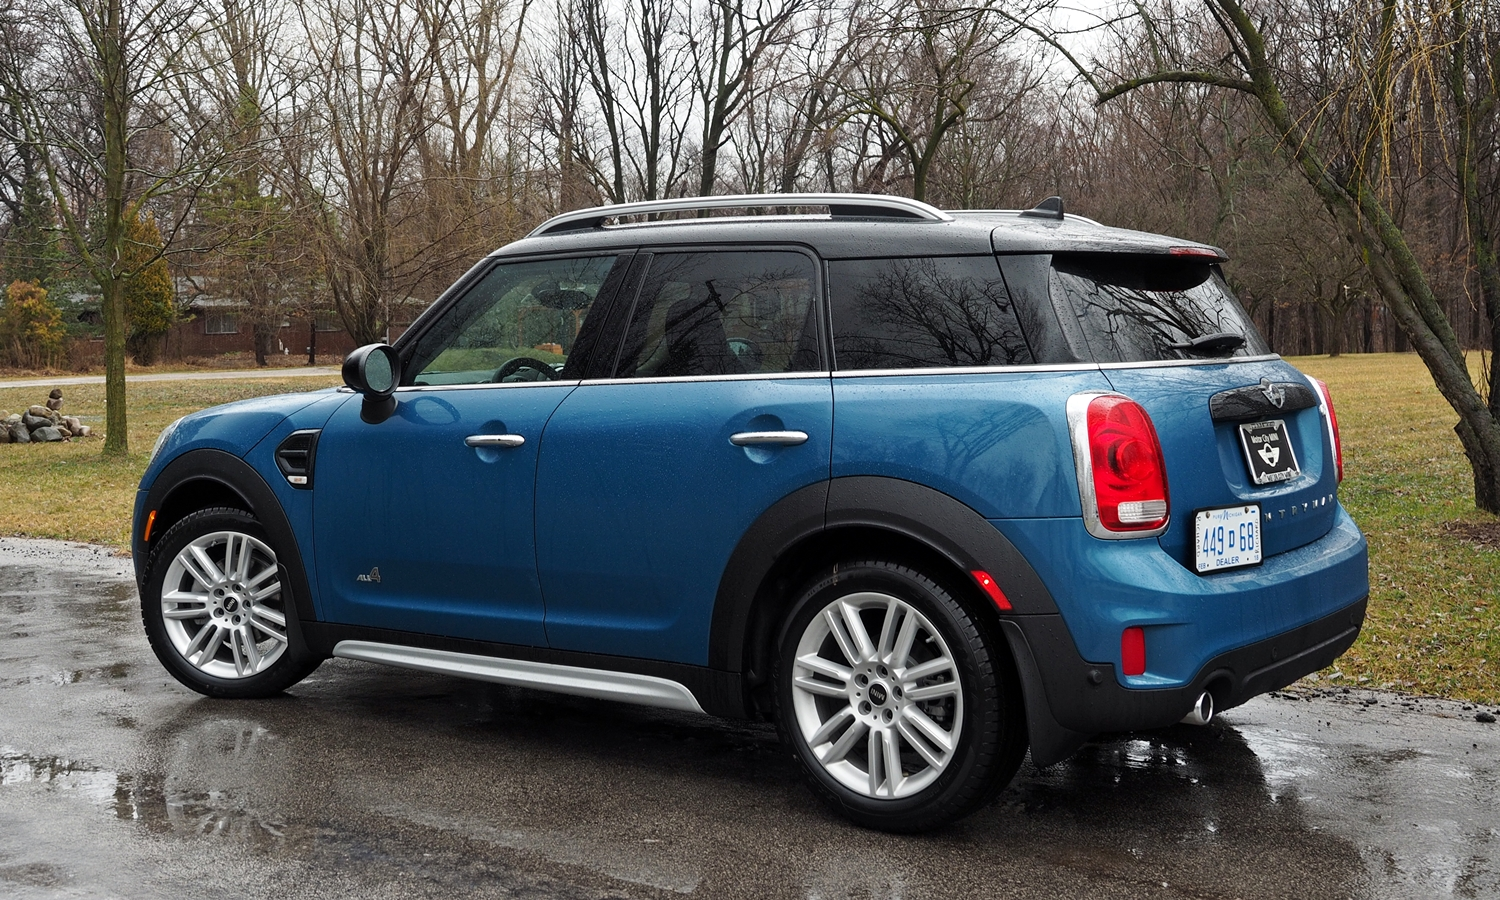 Kia Soul Photos: 2017 Mini Countryman rear quarter view